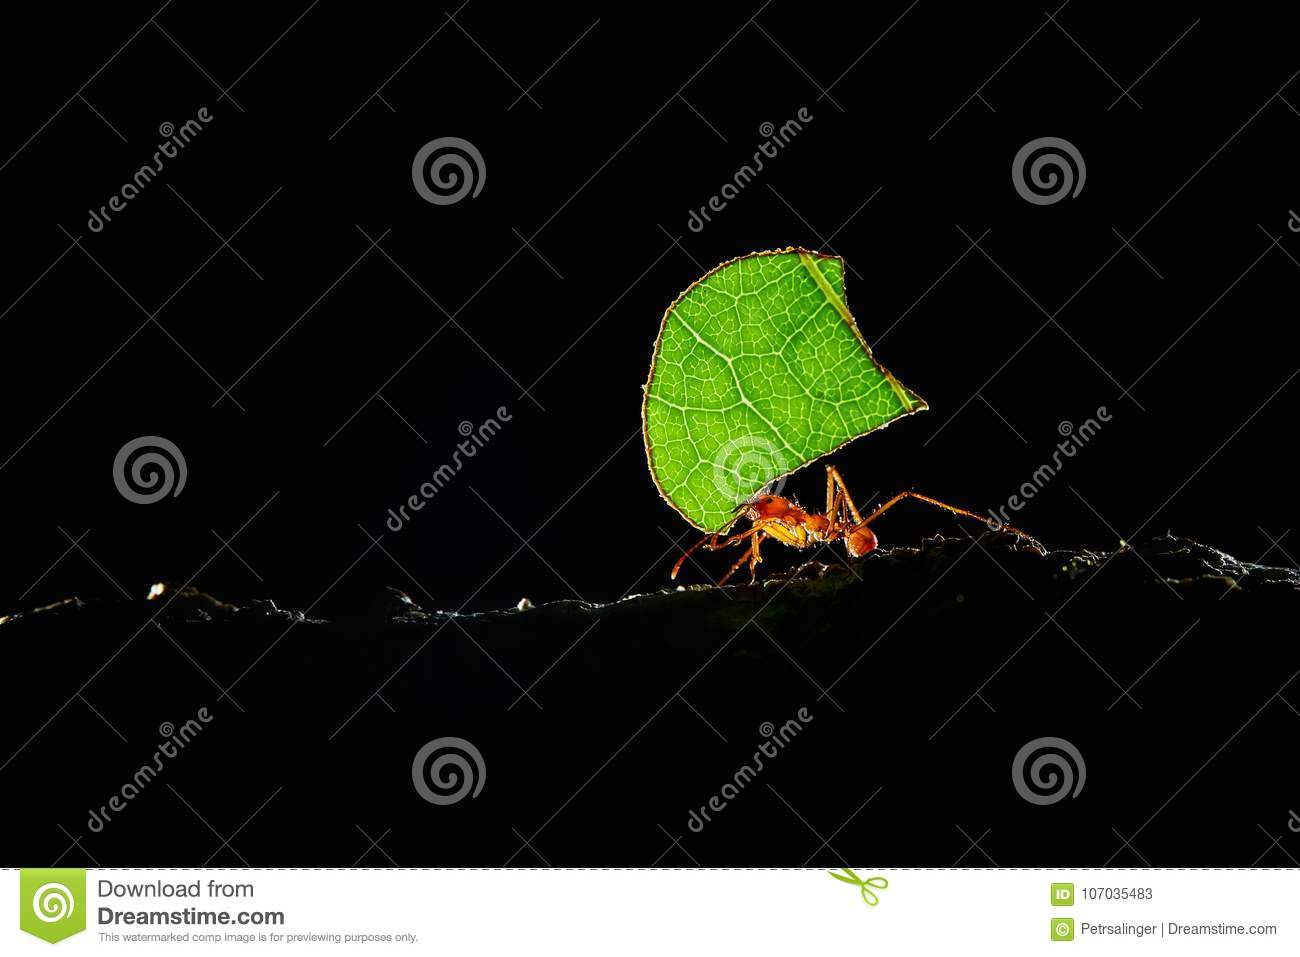 Atta ants, Leafcutter Ants, Costa Rica, macro of a red leafcutter ant